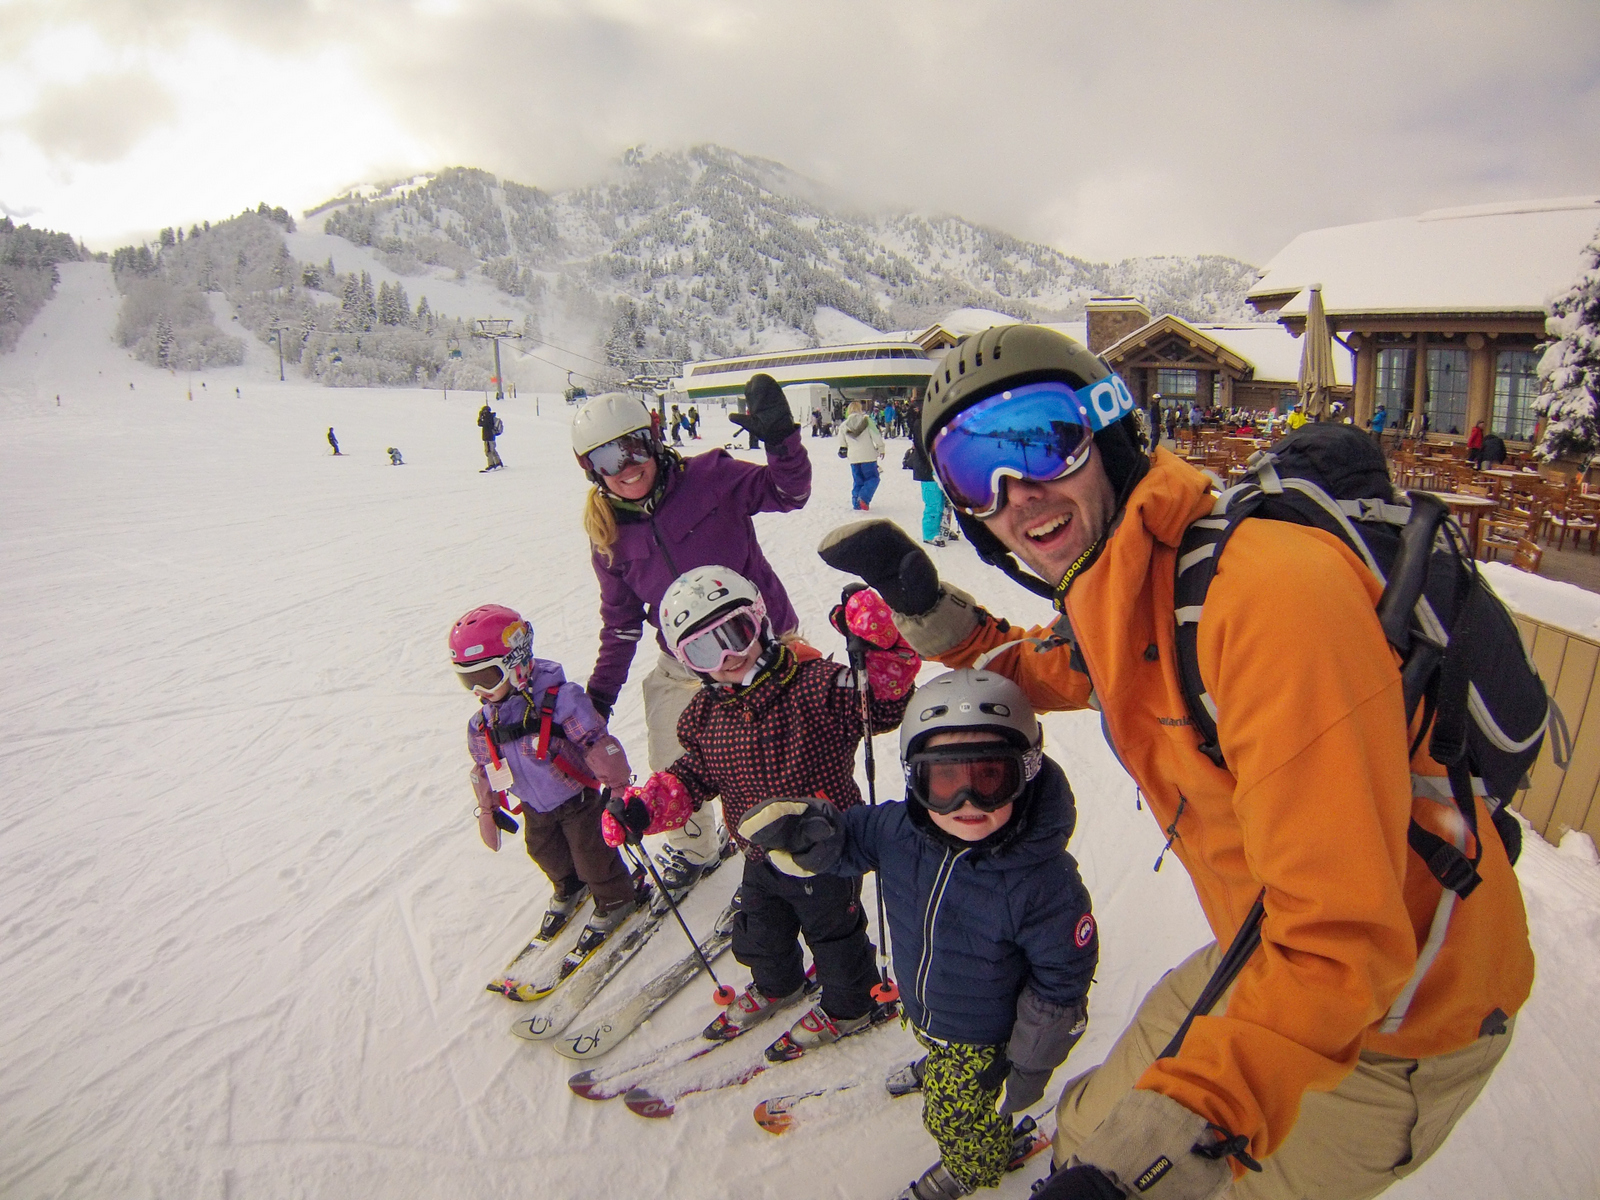 Family skiing in Utah, Snowbasin